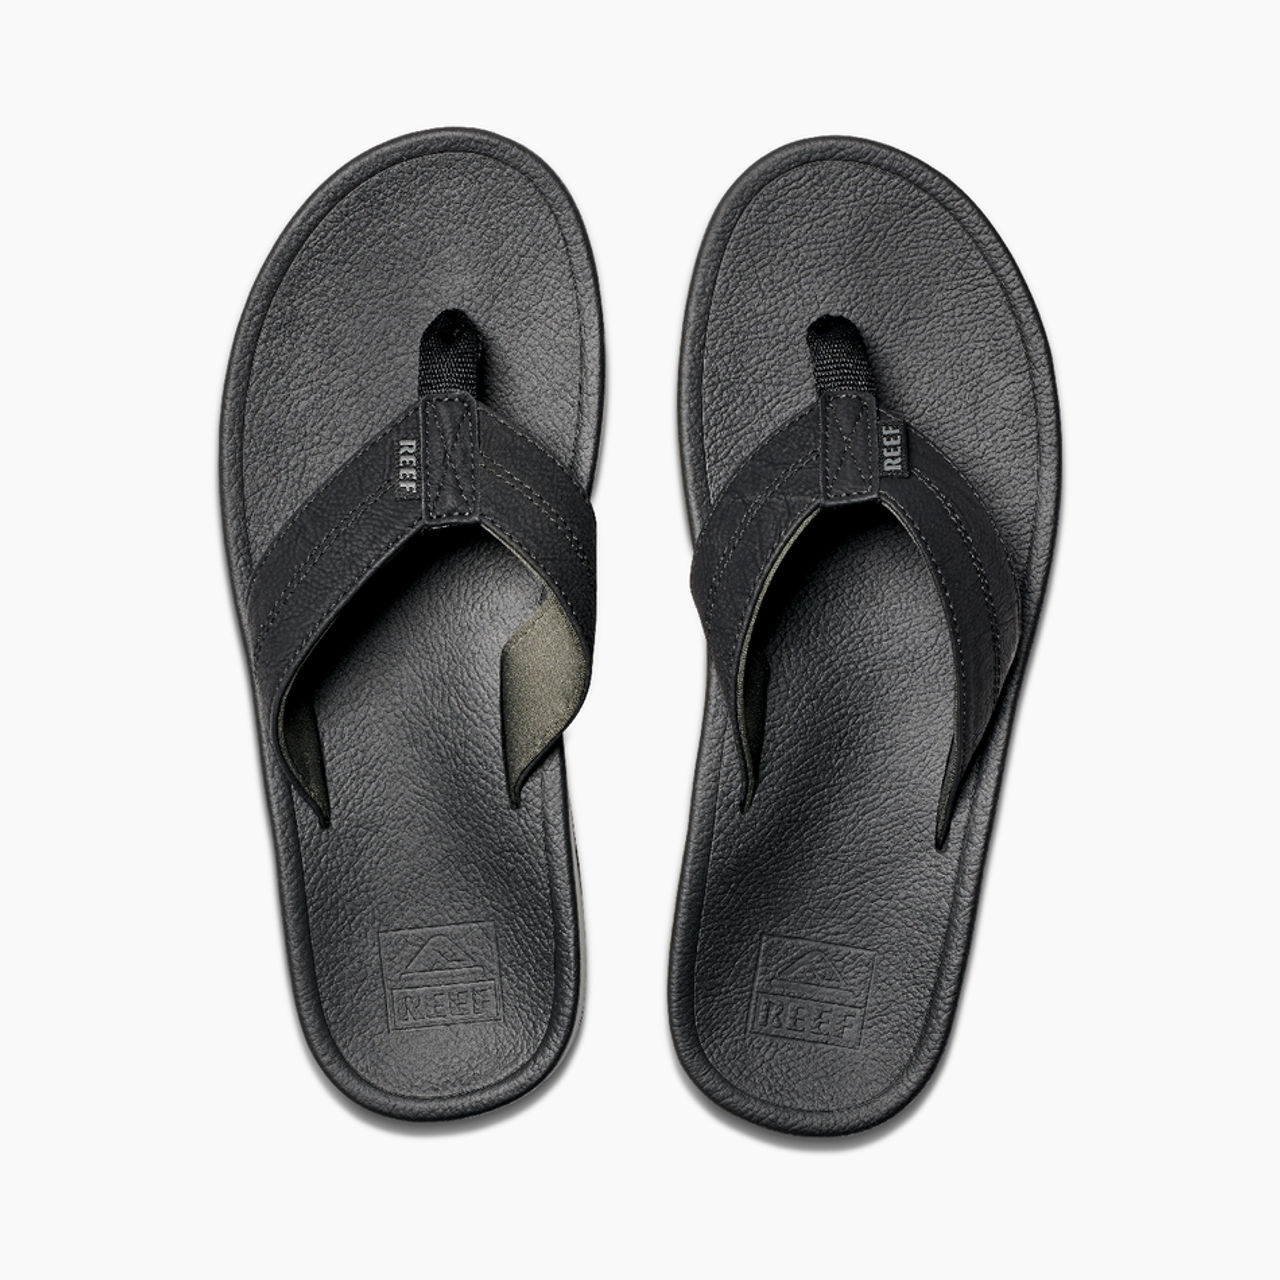 Reef Sandals - Men's Flip Flops - Journeyer - Black/Grey - RF0A39UG